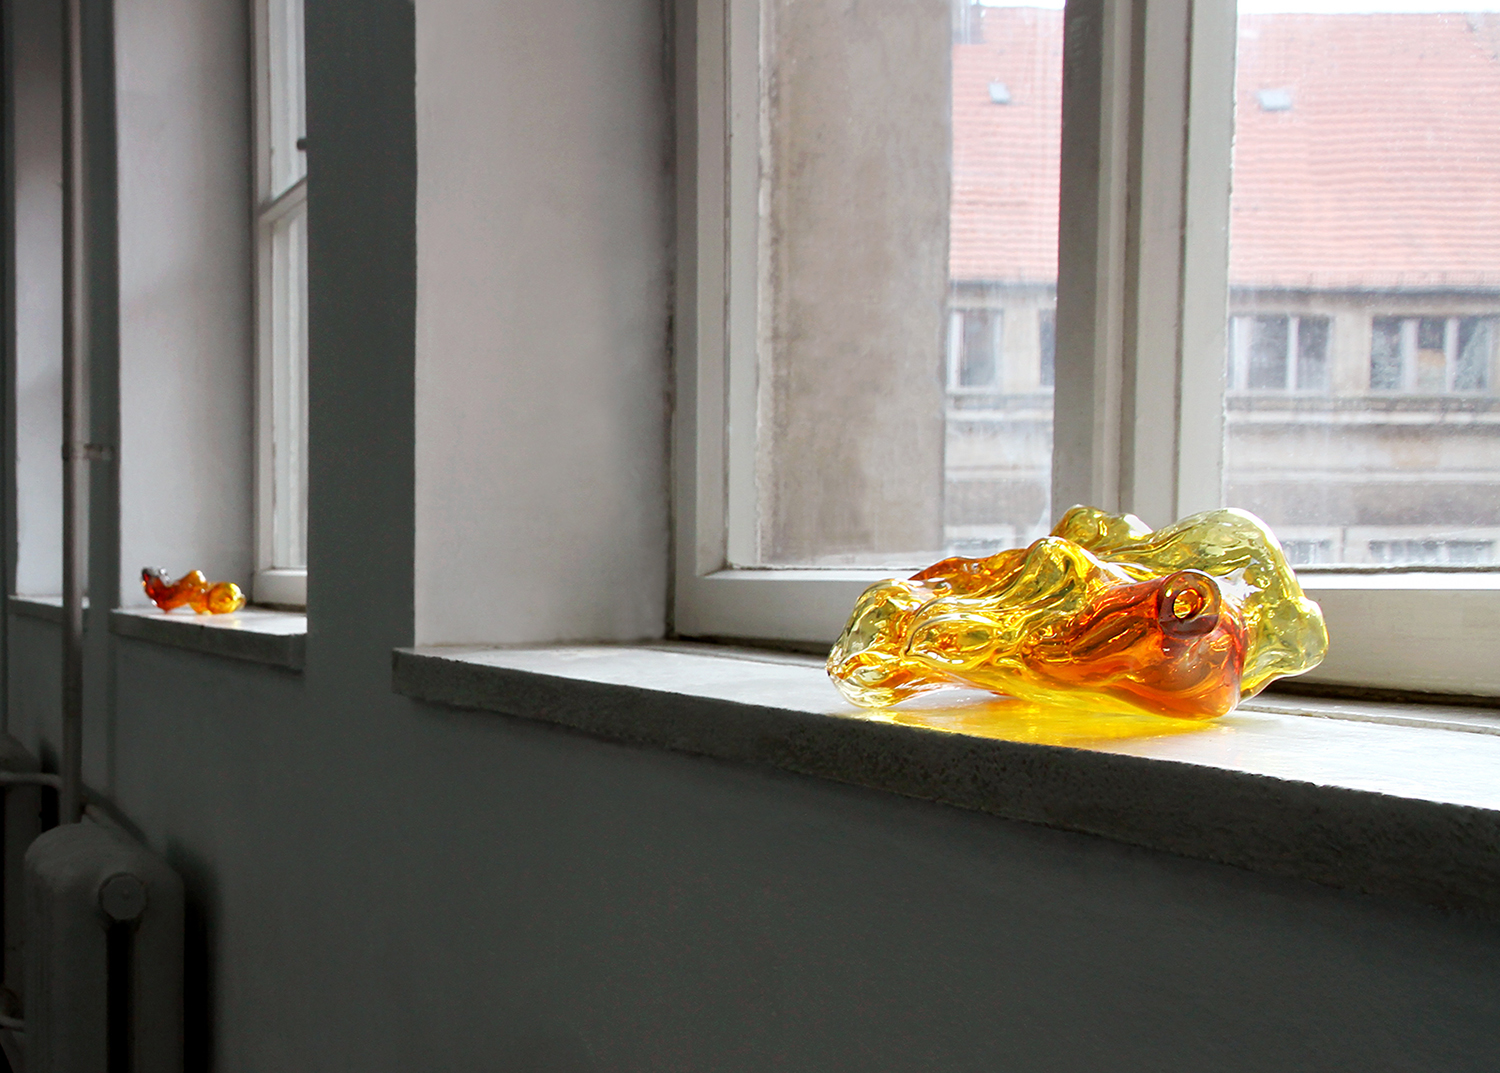 "Sara Kramer ""Untitled"" (hand blown glass. Approx. size (left): 30 x 8 x 7,5 cm. Approx. size (right): 31 x 20 x 9 cm)."